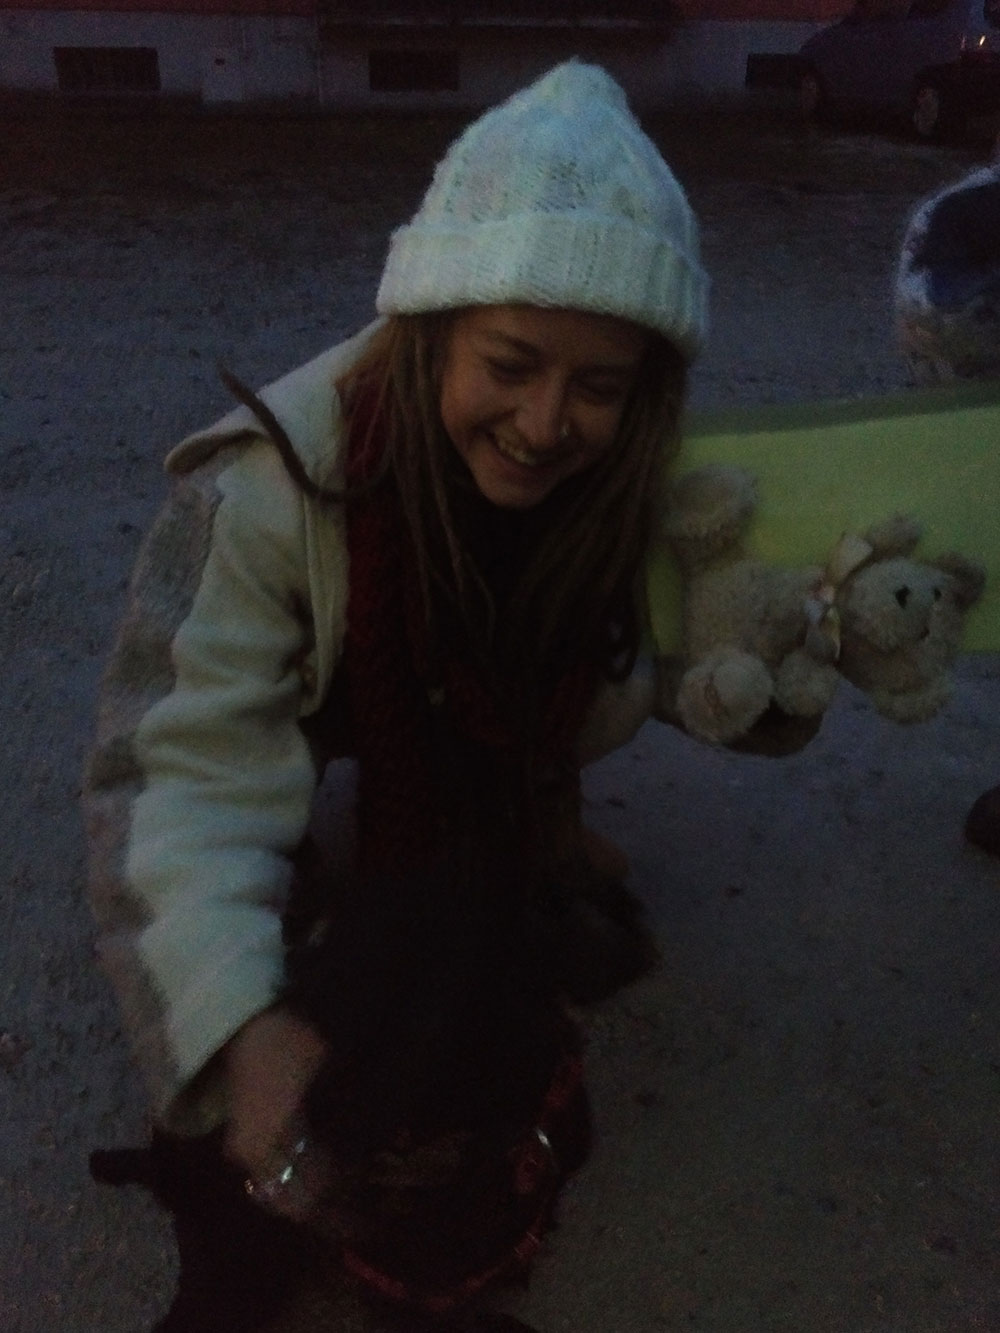 On reaching Verona, Tilly gives Lindsay her teddy and gets a big hug in return